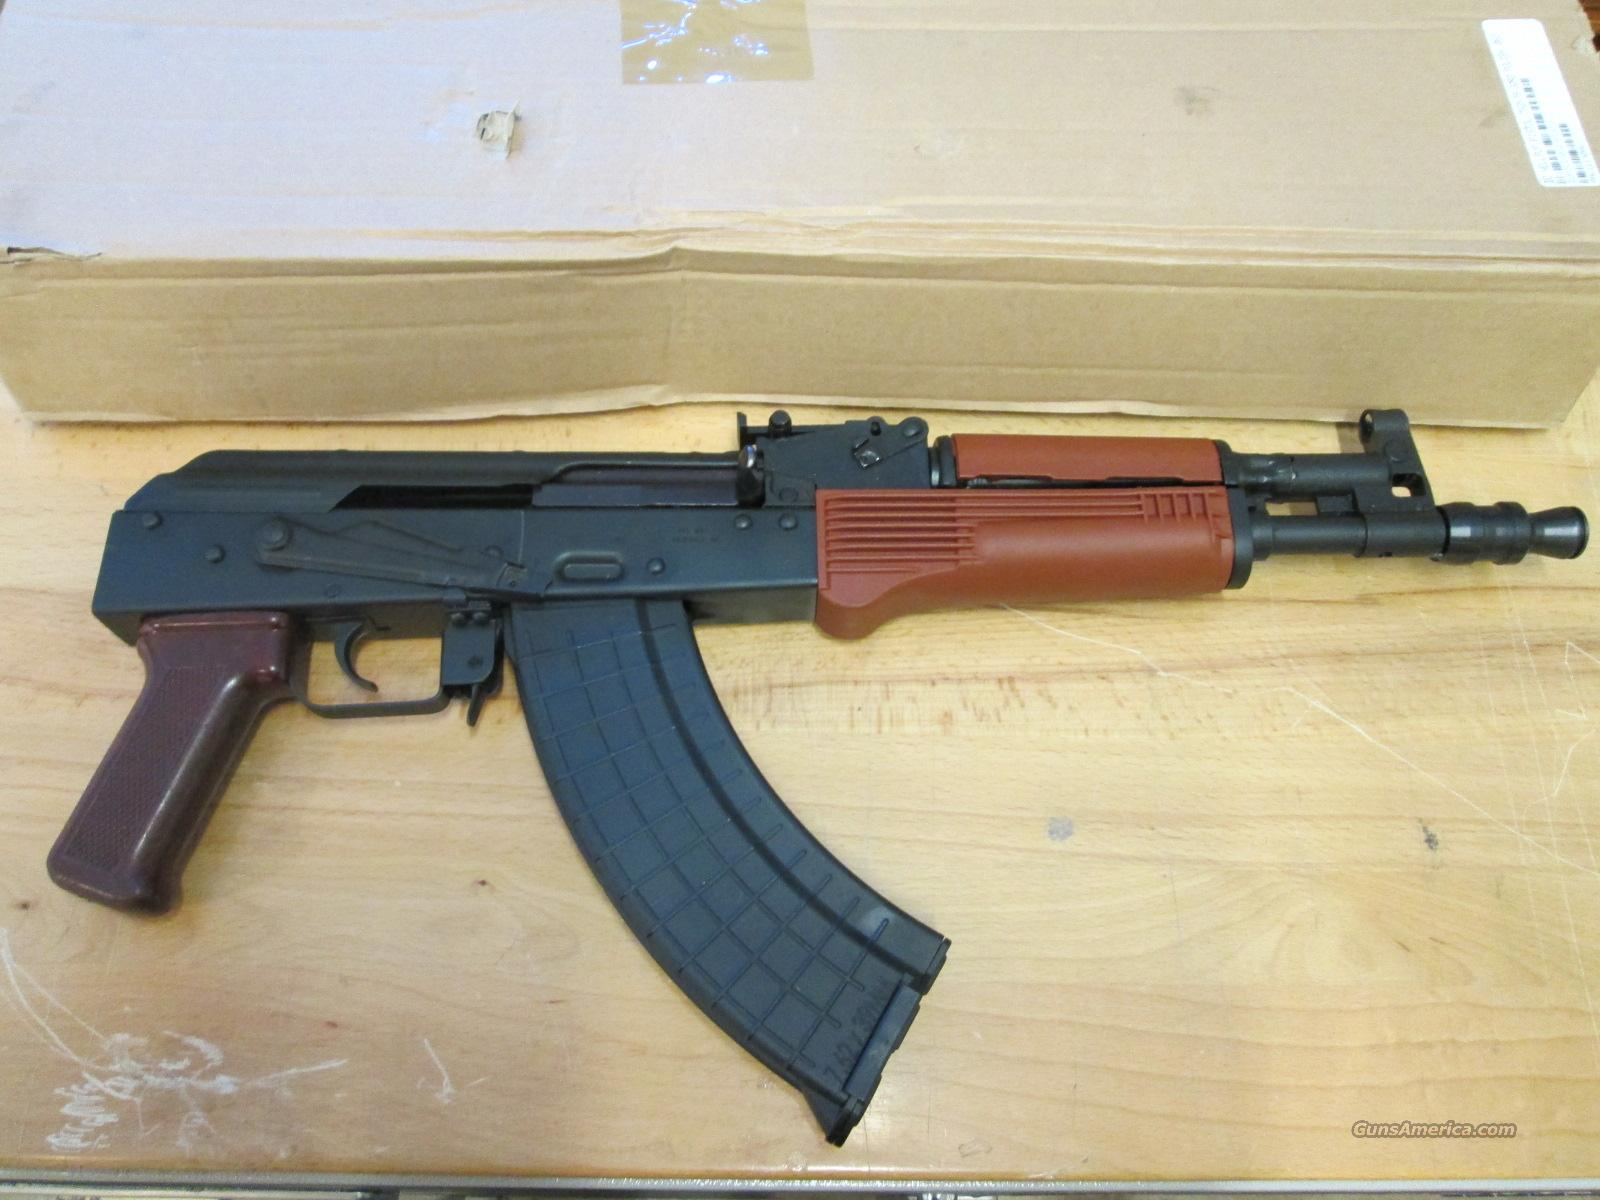 4th of JULY SALE! I.O. Hellpup AK-47 Pistol Pol... for sale